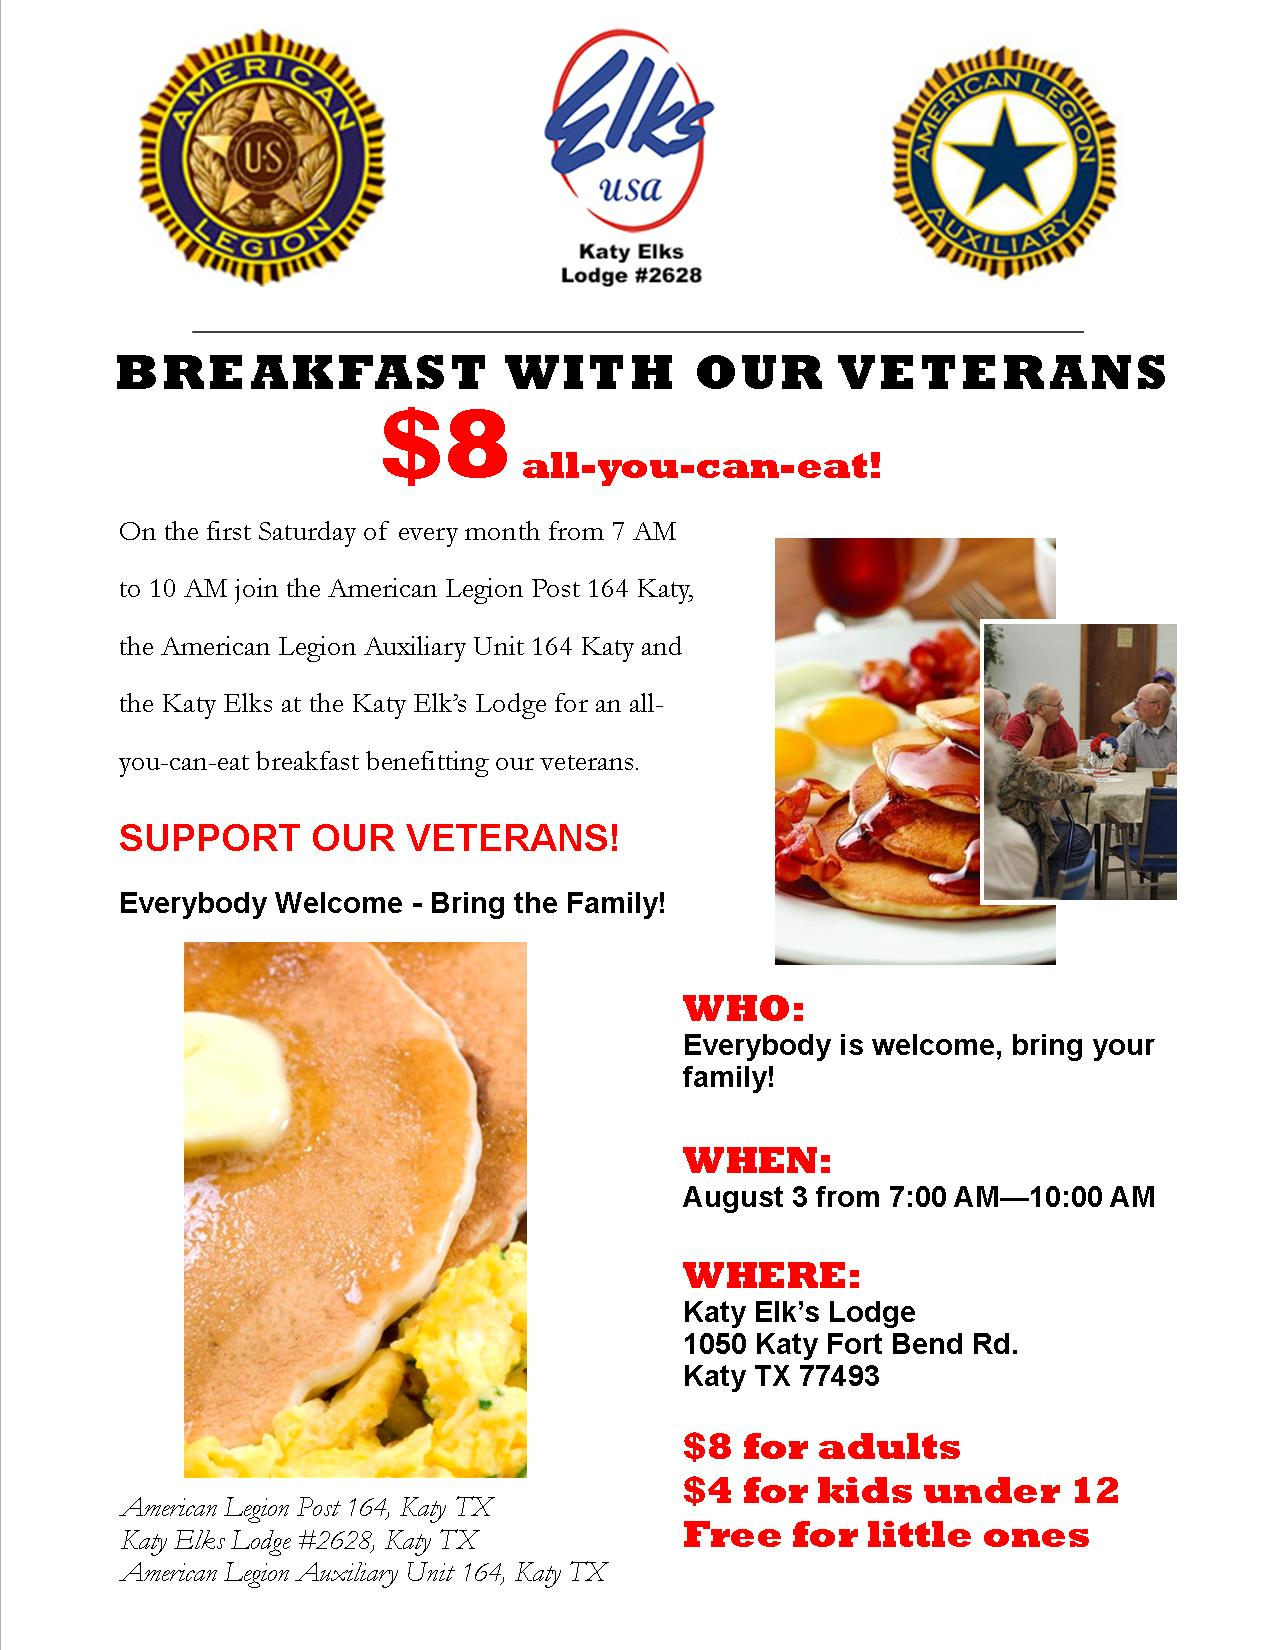 Brekfast with our Veterans